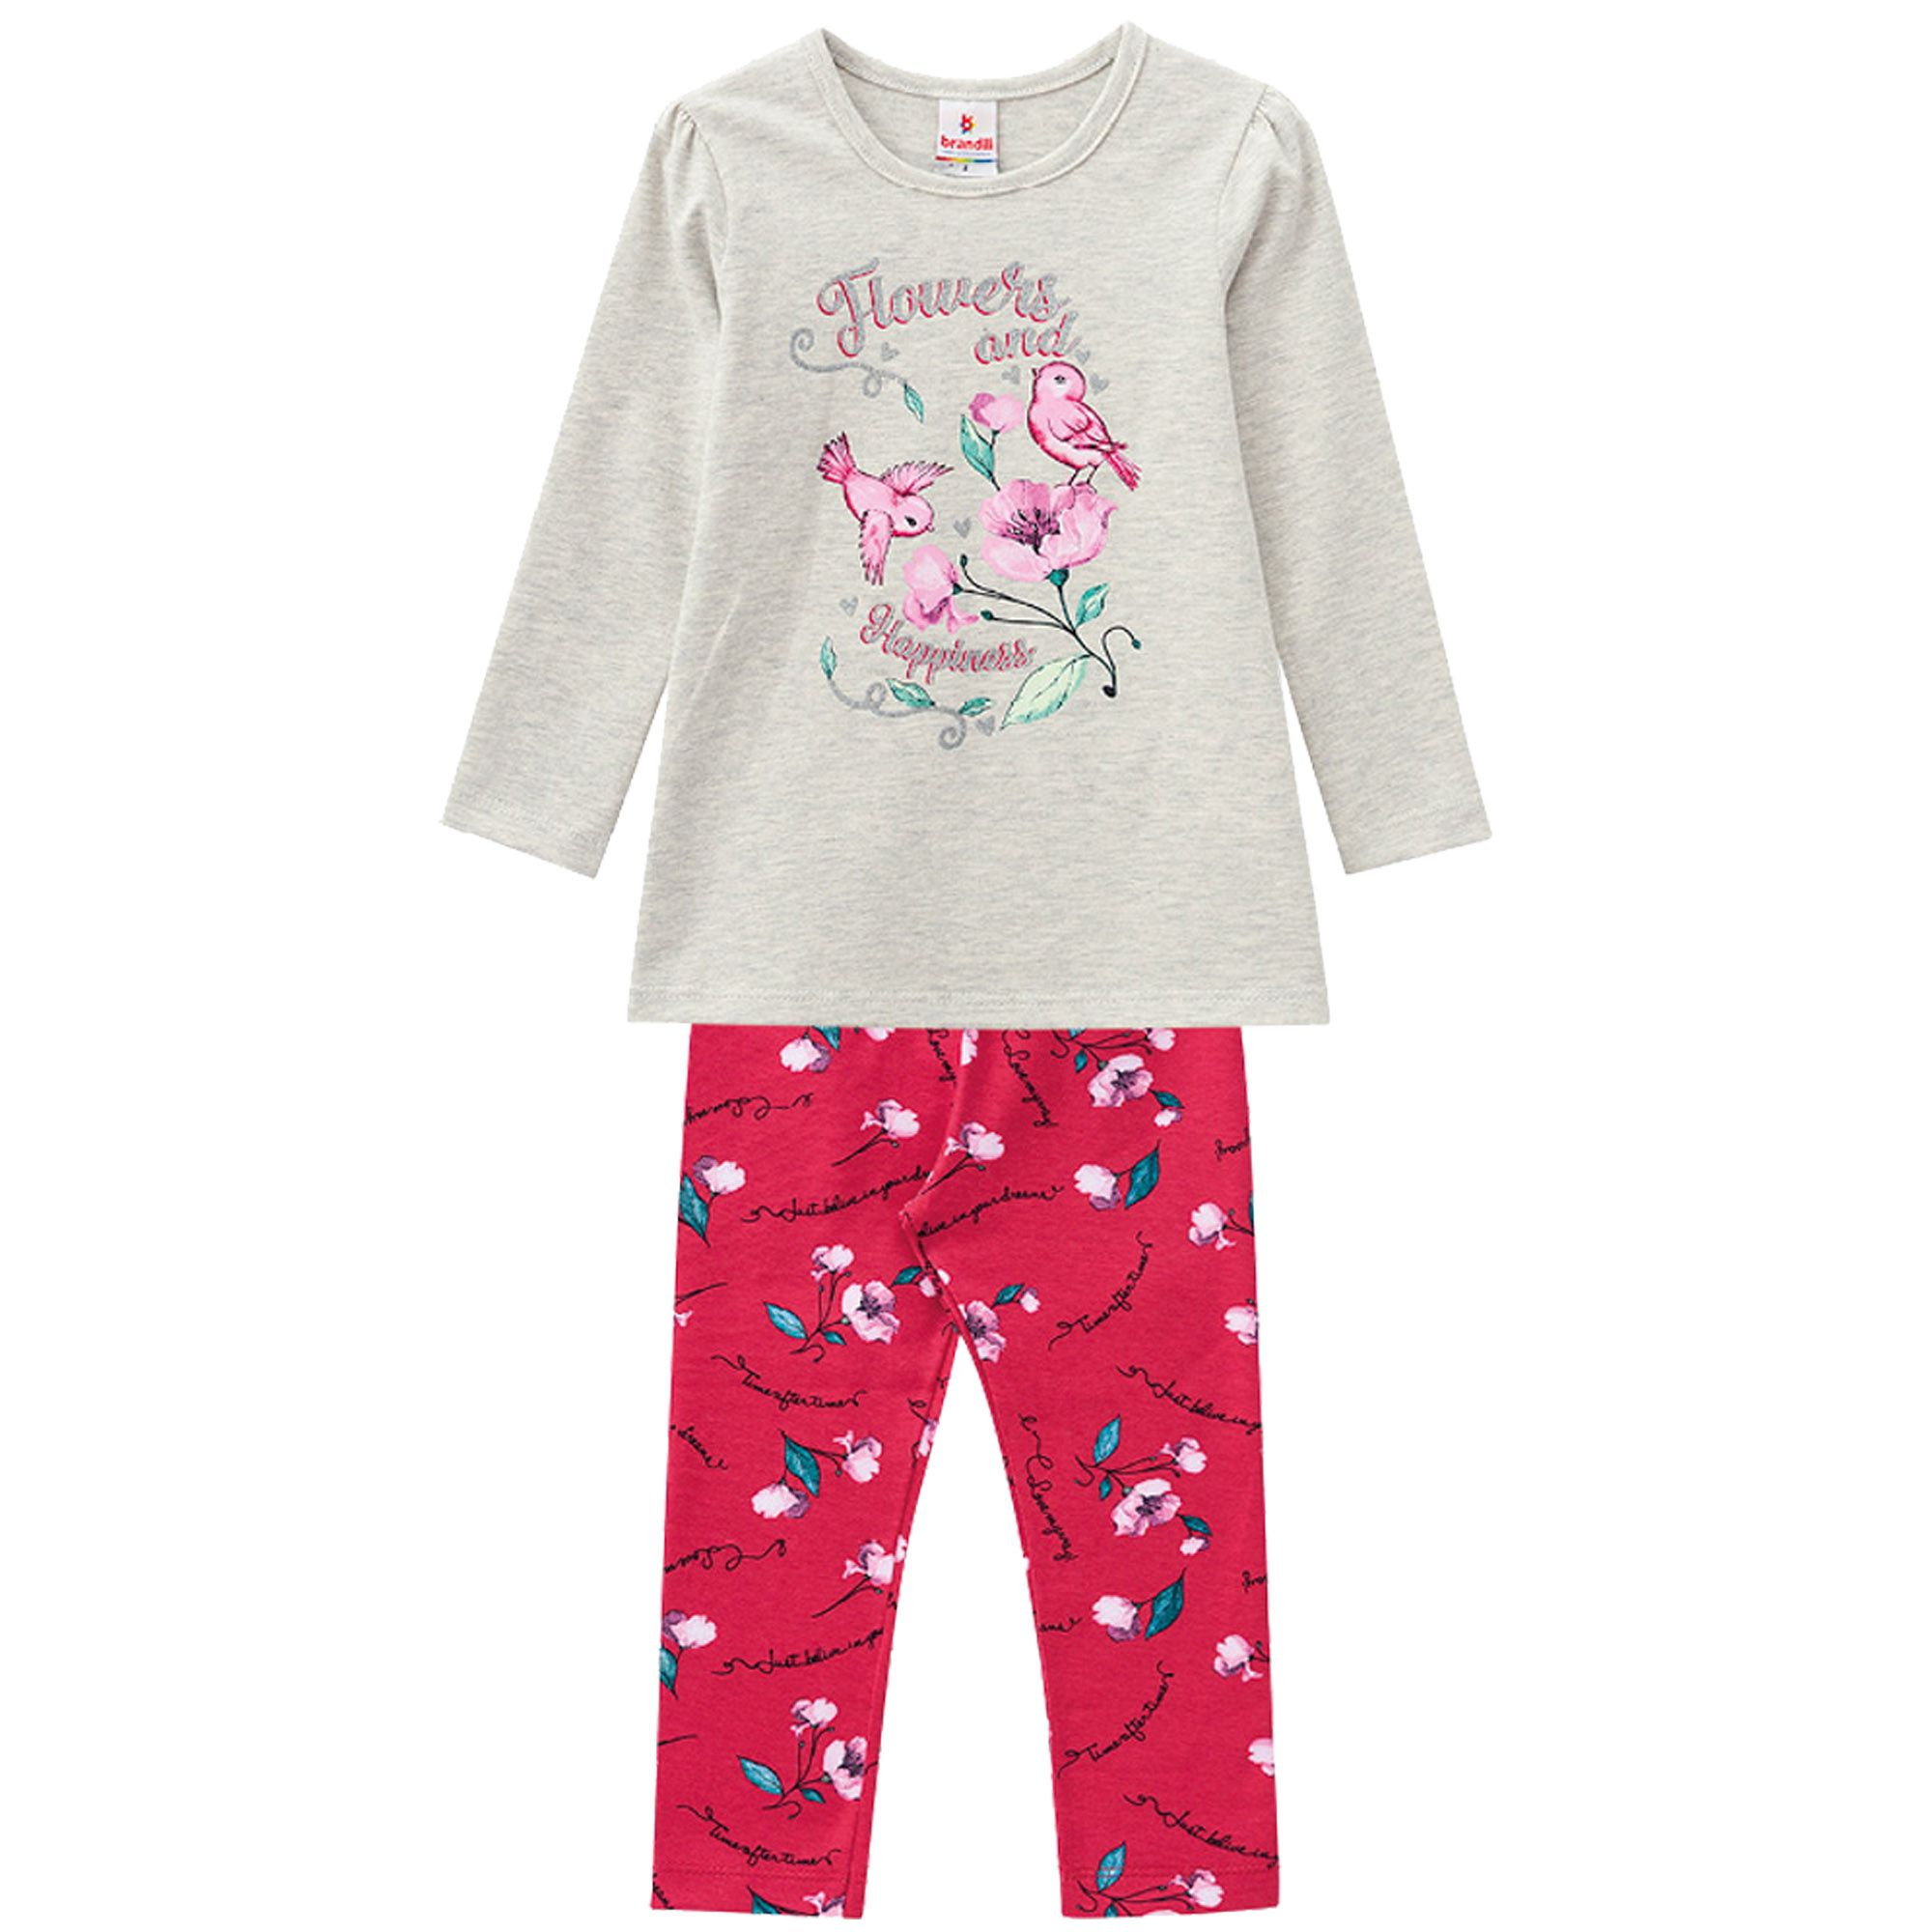 Conjunto Brandili Estampado Flowers and Happiness com Legging em cotton - 01 ao 03